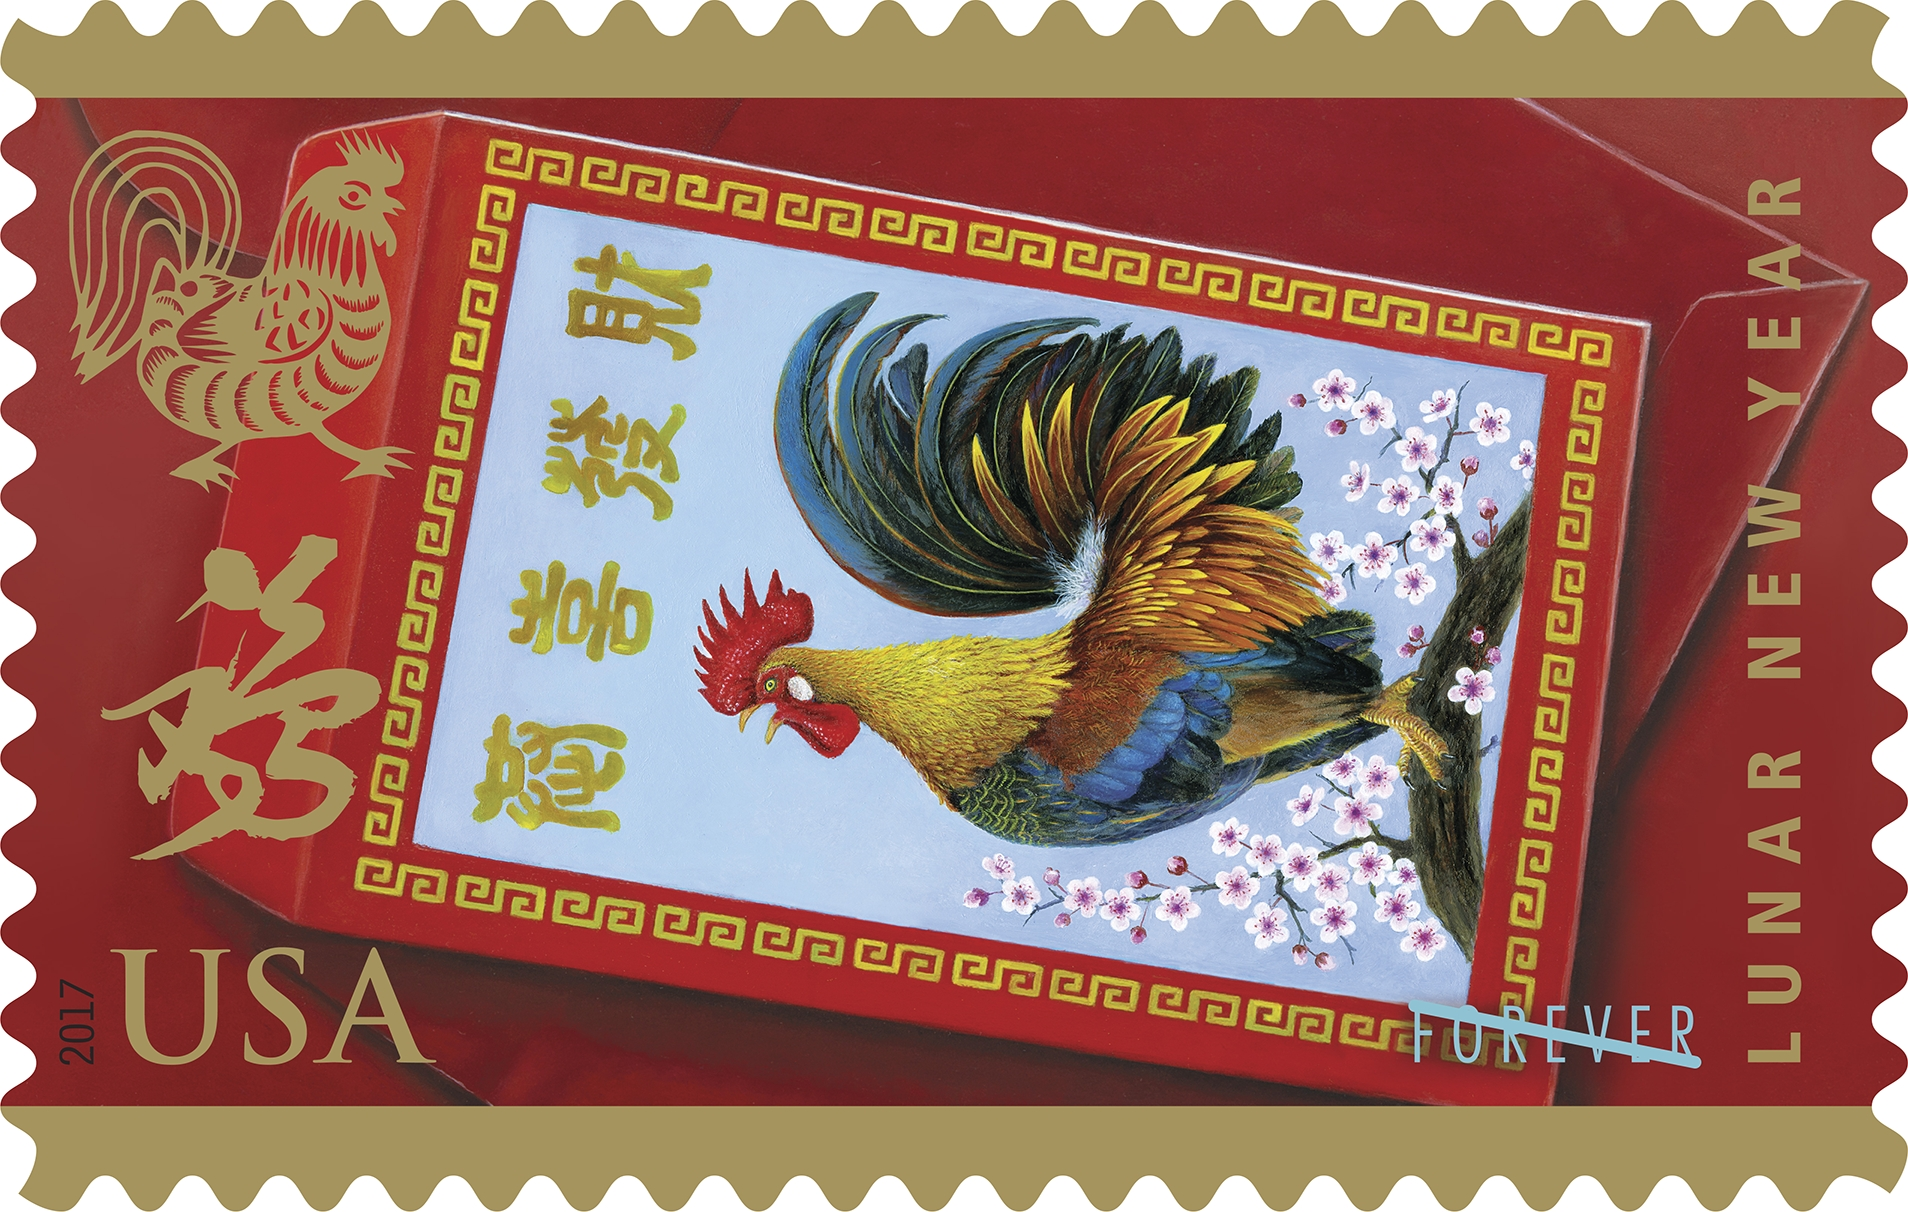 USPS Releases Lunar New Year Stamp Designed by Kam Mak  FIT Newsroom